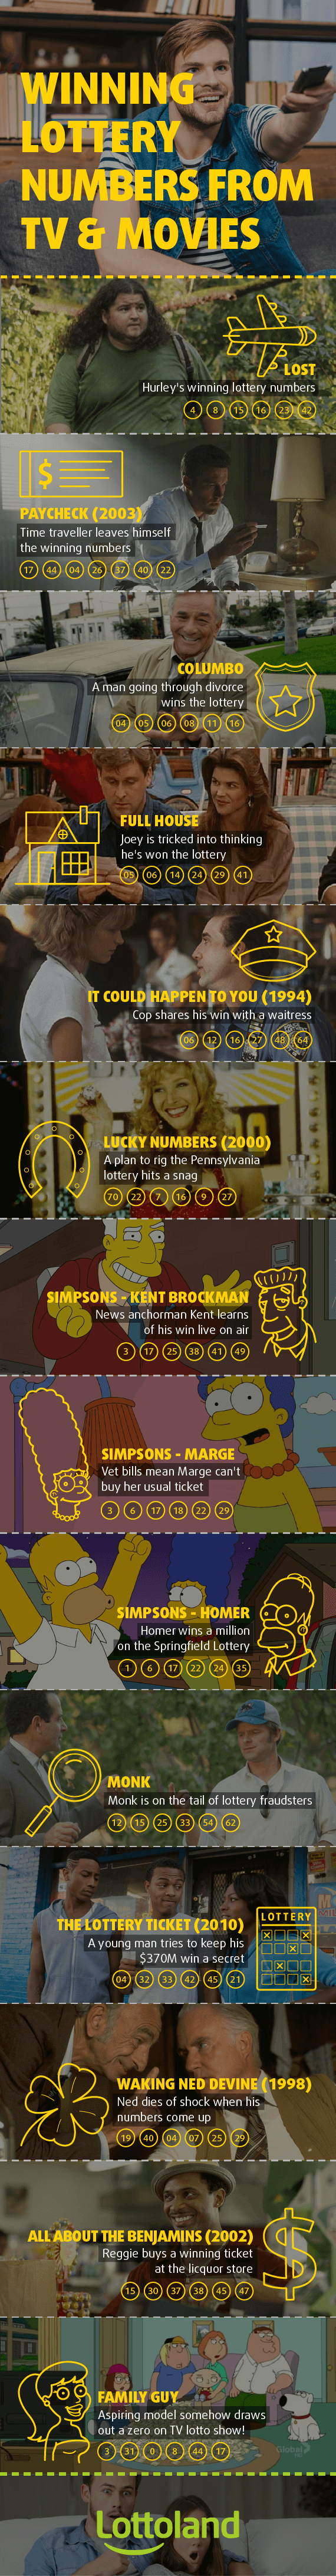 Infographic Winning Lottery Numbers from TV and Movies